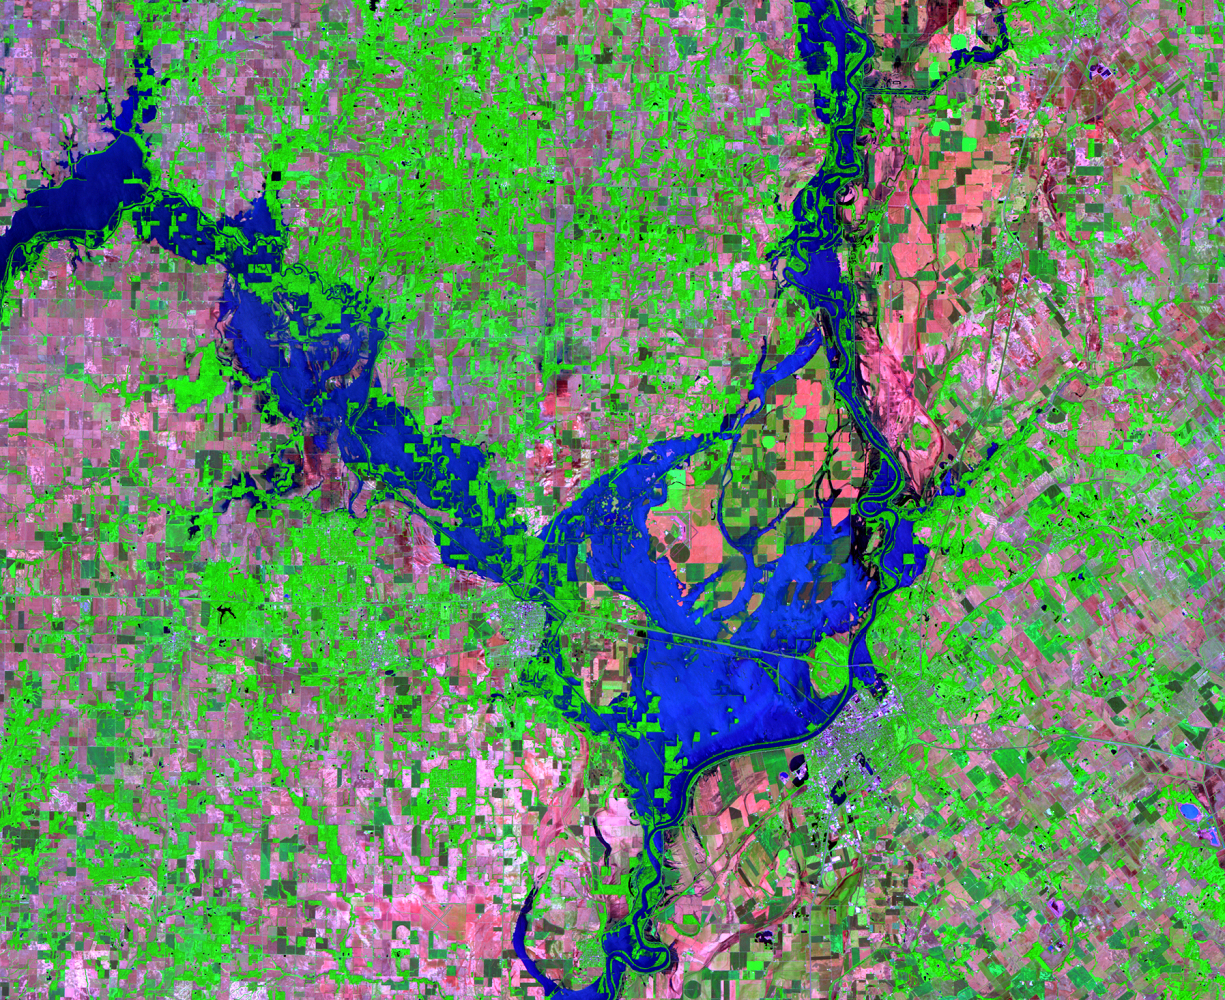 June 11, 2008, Landsat 5 (path/row 22/33) — Flooding at Lawrenceville, Illinois, and Vincennes, Indiana, USA